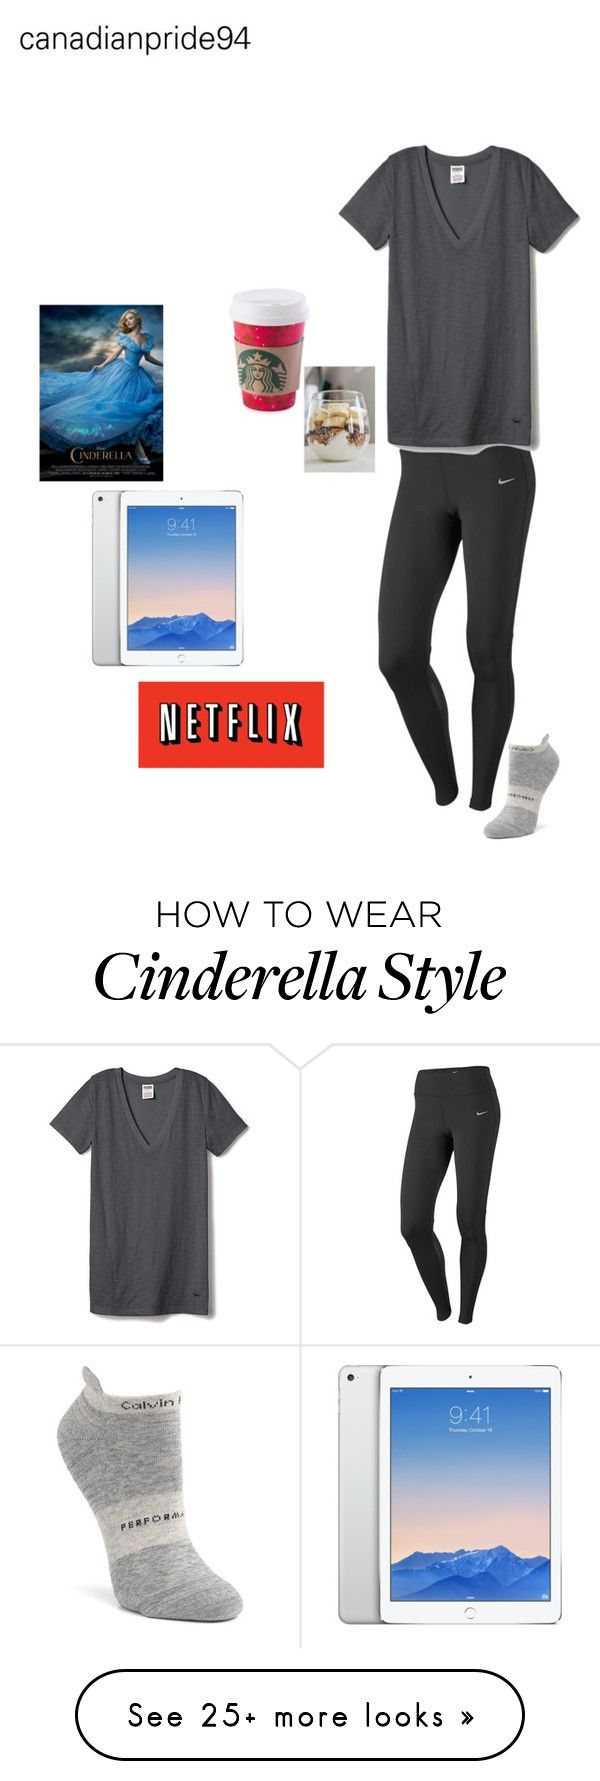 """night in with Johnny"" by canadianpride94 on Polyvore featuring NIKE, Calvin Klein, Victoria's Secret PINK, women's clothing, women's fashion, women, female, woman, misses and juniors"